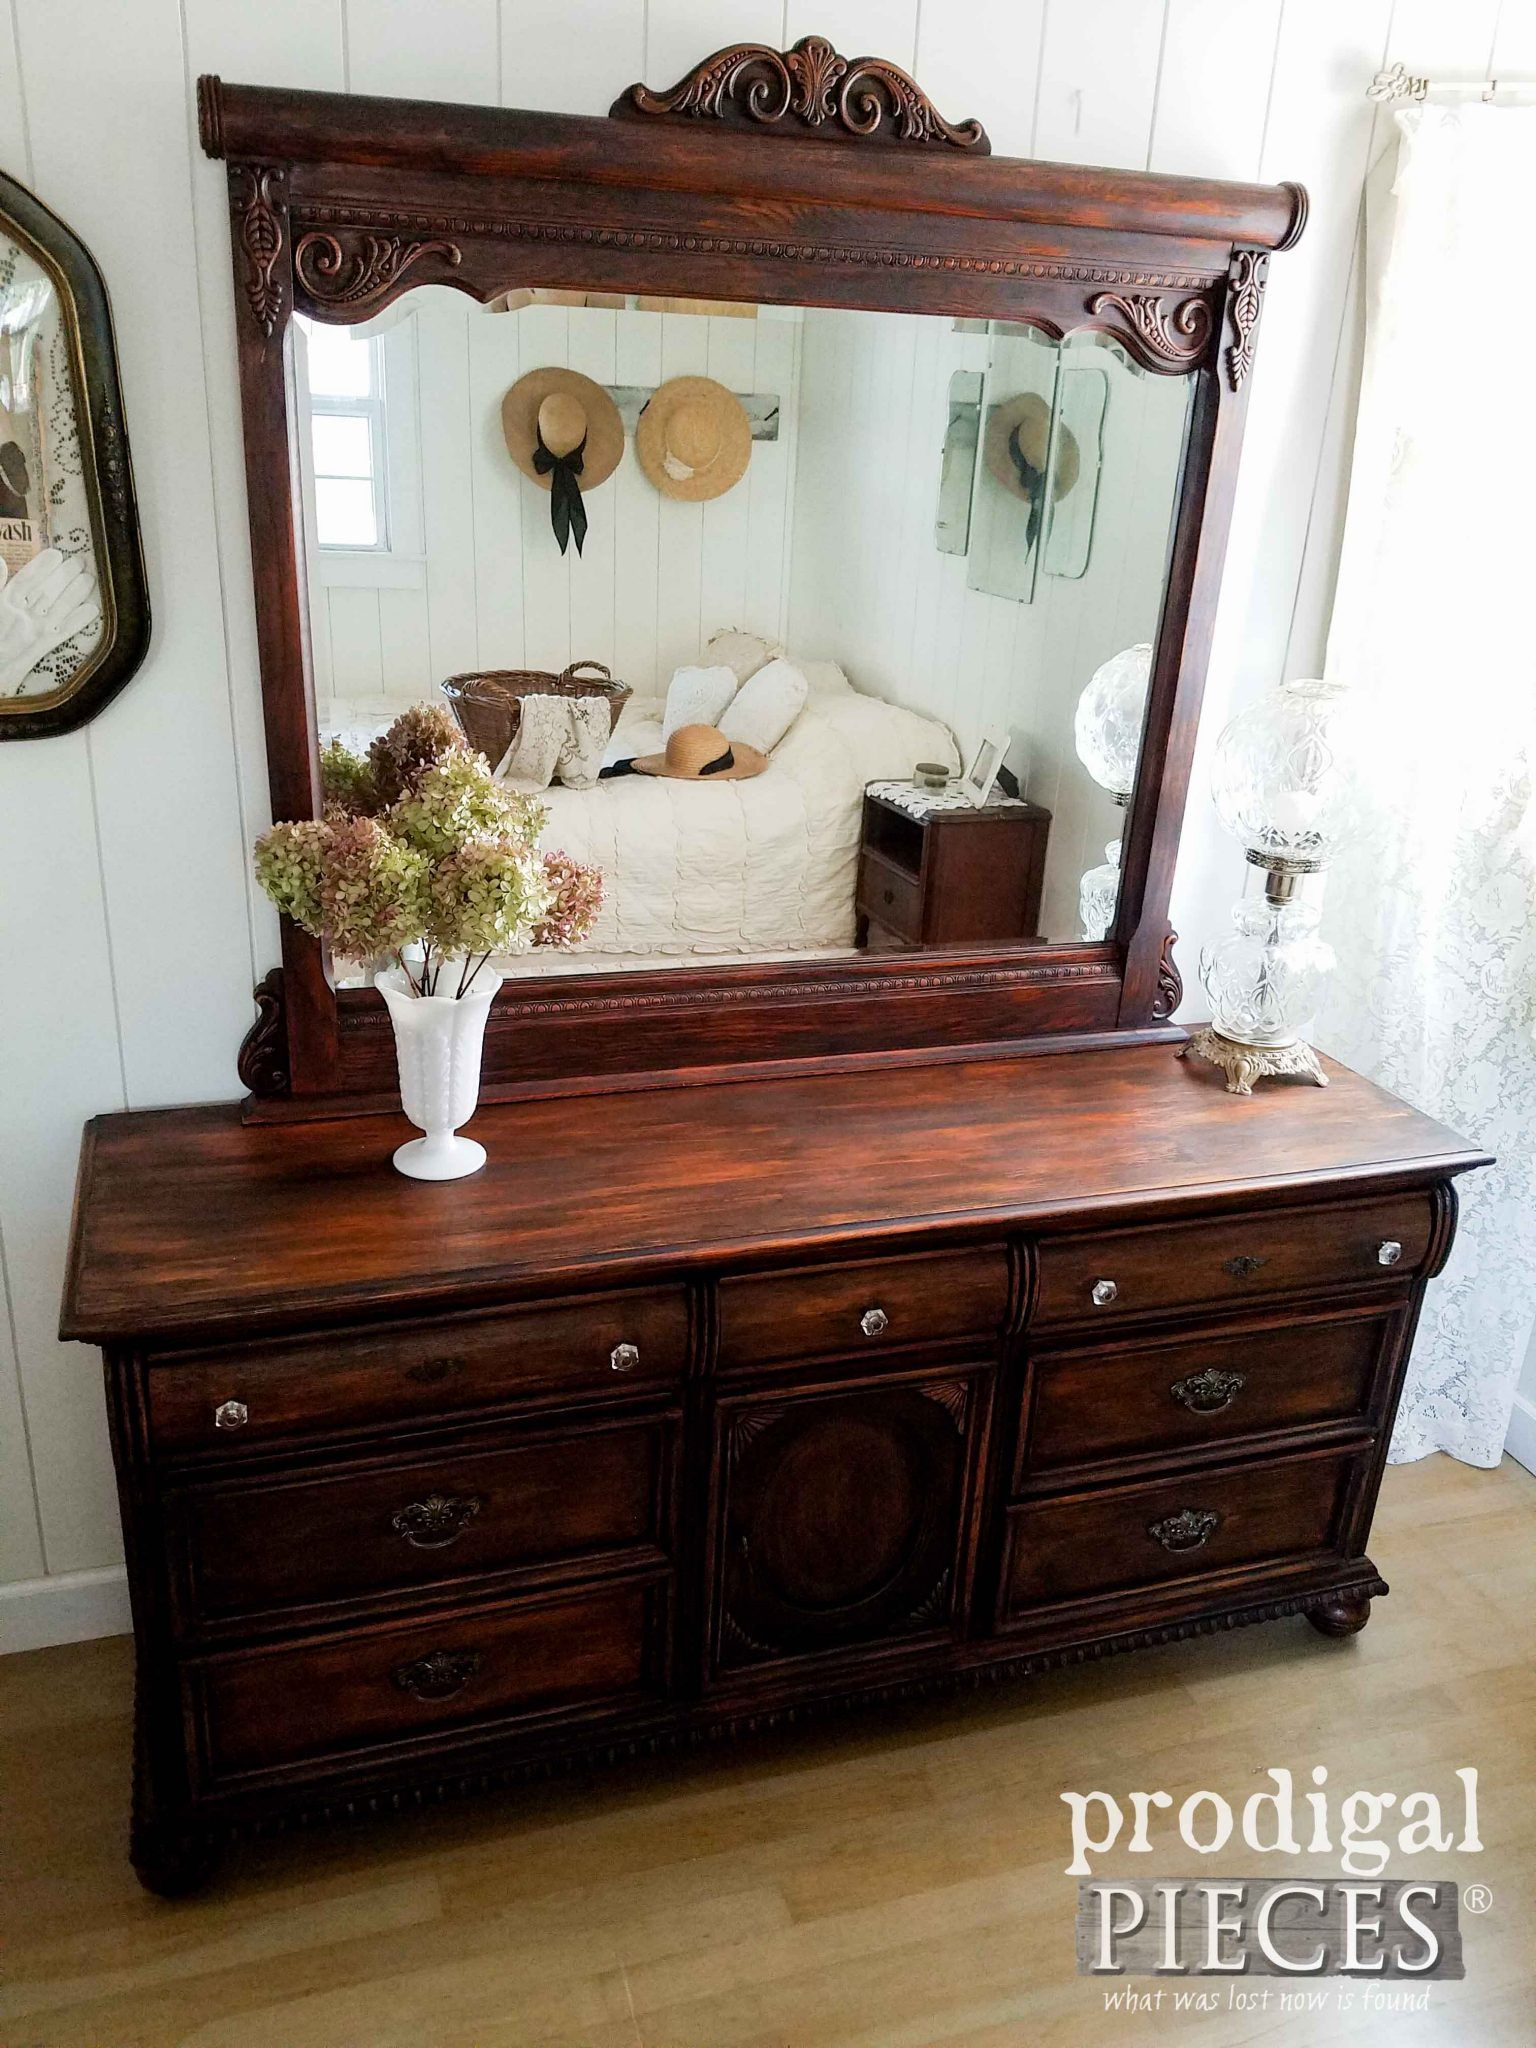 Updated furniture the easy way victorian dressers dresser and